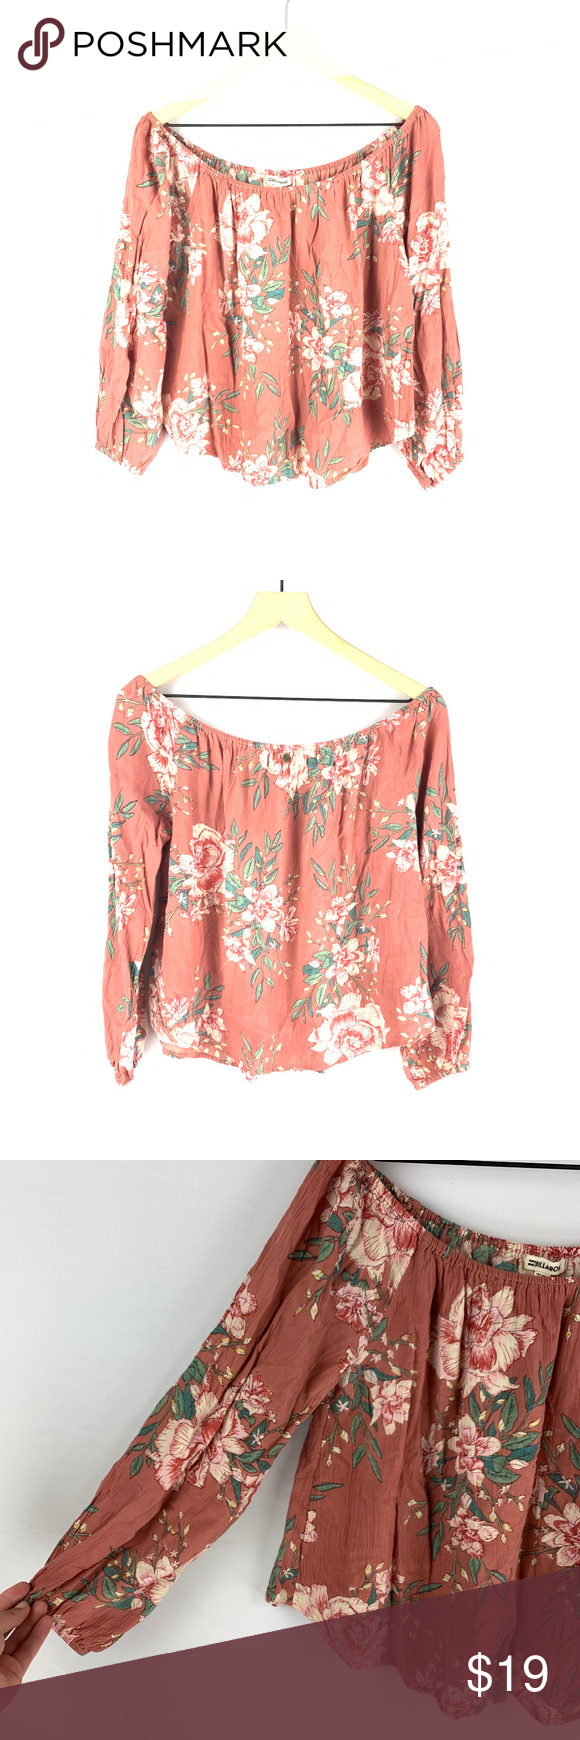 """Billabong Pink Floral Mi Amore Off Shoulder Top L Features:  - Rounded hem line  - Floral print pattern  - Off shoulder style  - Flowy body  - Stock photo is of the shirt in a different print for reference  Size: Large Colors: Pink, Off White, Green, Yellow Flaws: None, very good condition Fabric Content: 100% Rayon  Measurements: - Length: 18.5""""  - Bust: 23""""  Measurements are approximate and taken laying flat.    A1794 Billabong Tops Blouses"""